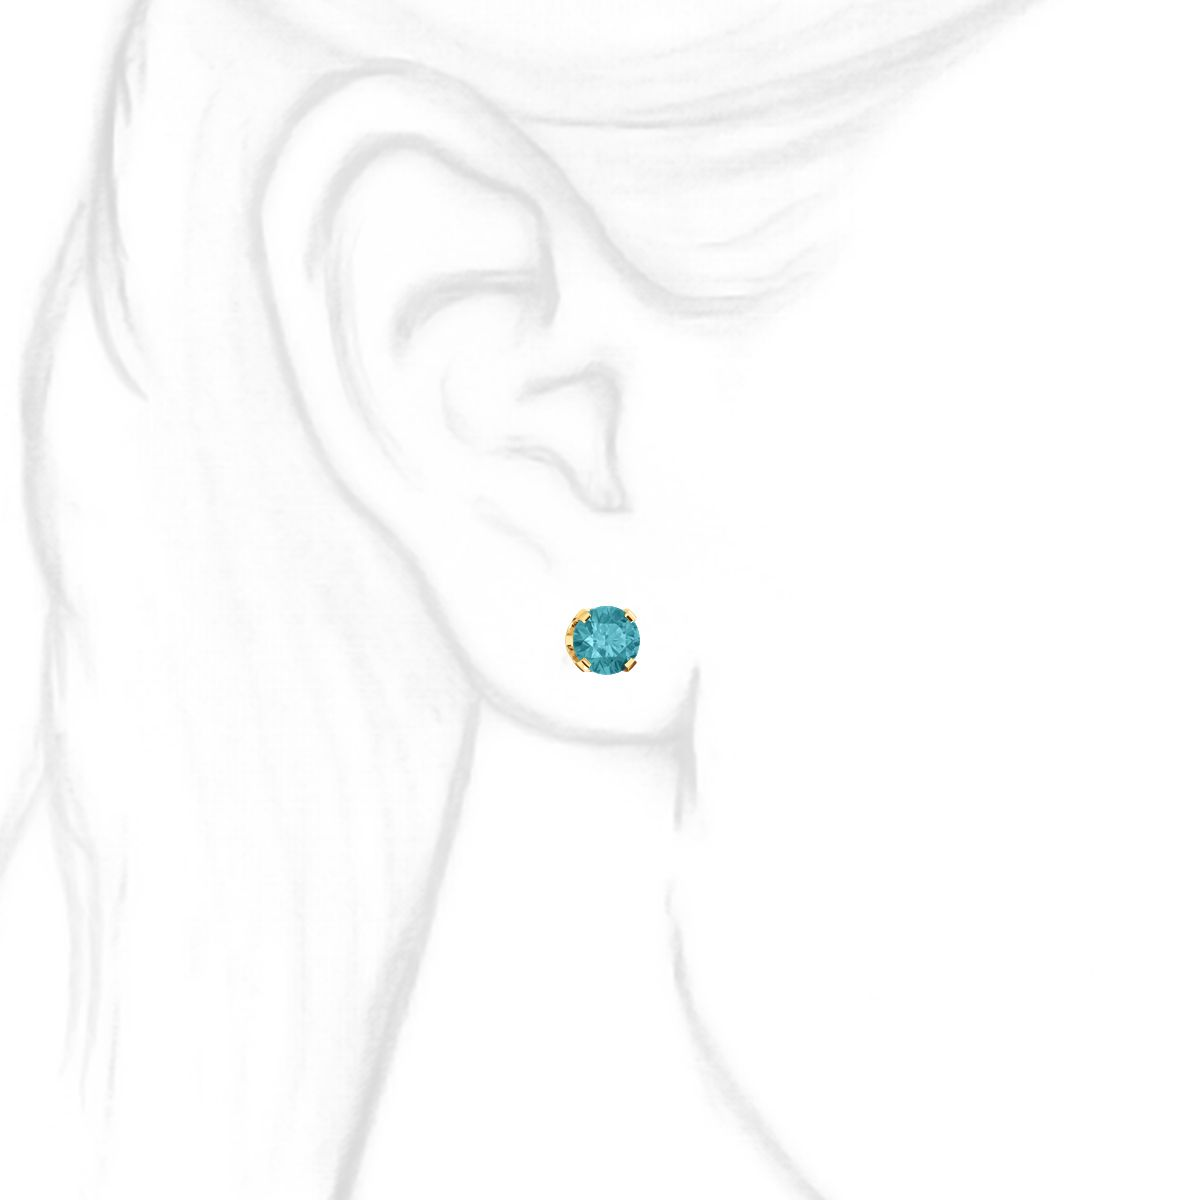 ed1a6f9e8 6mm, 1.5cts Simulated Blue Zircon 4-Prong Stud Earrings 14K Yellow Gold ...